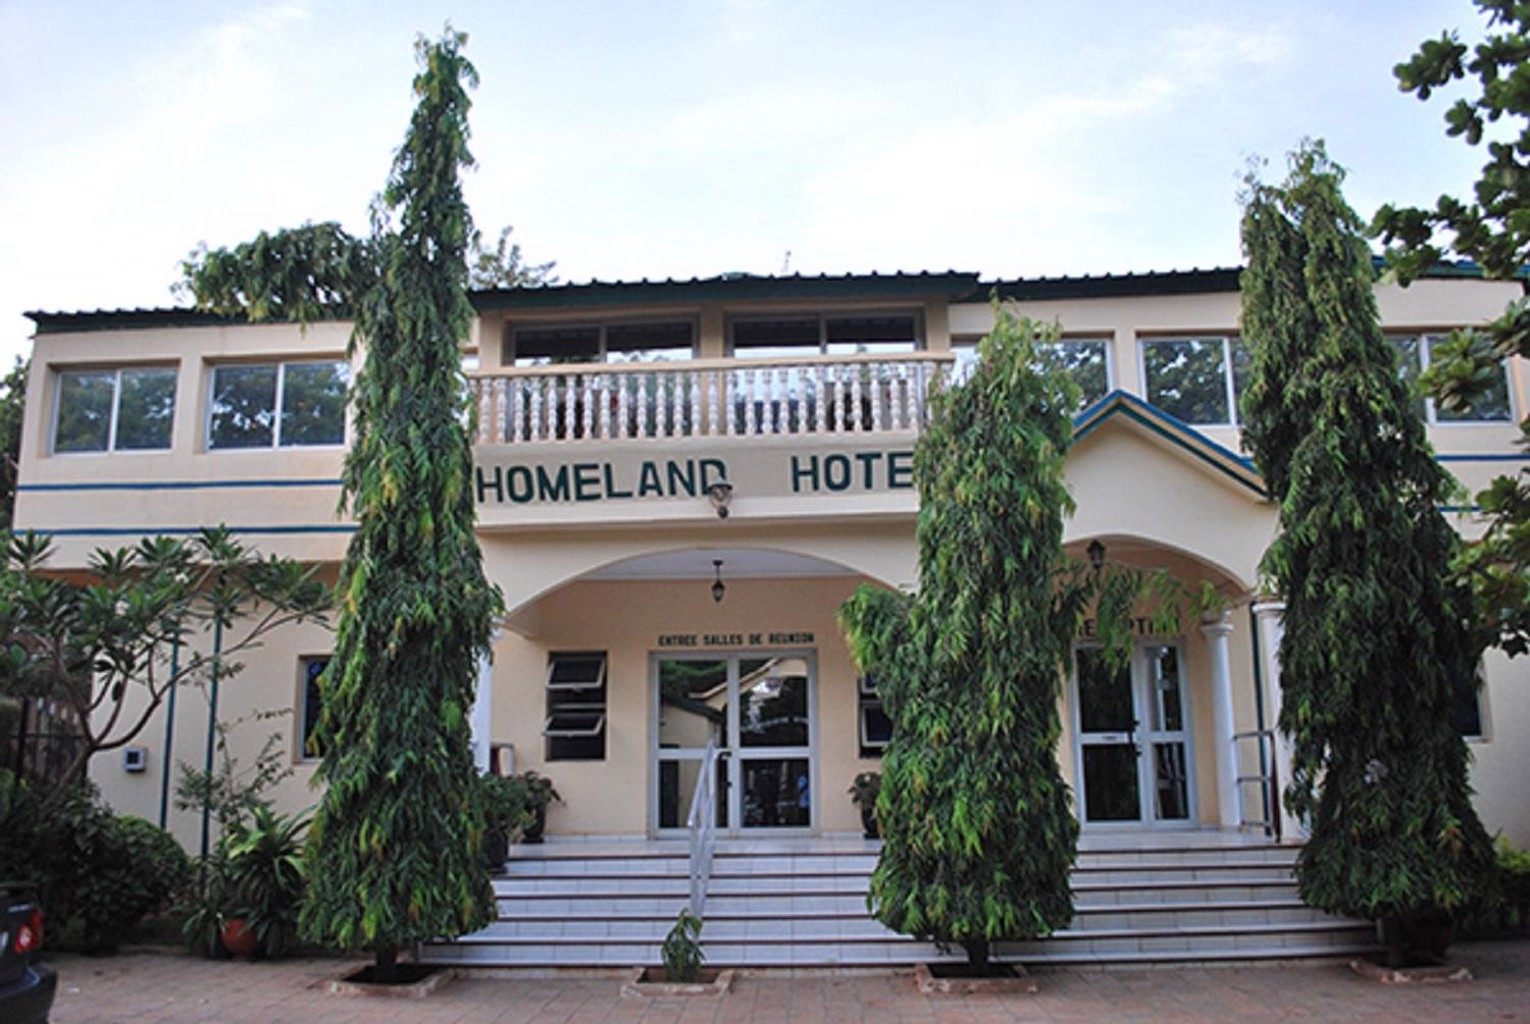 Gallery image of Homeland Hotel